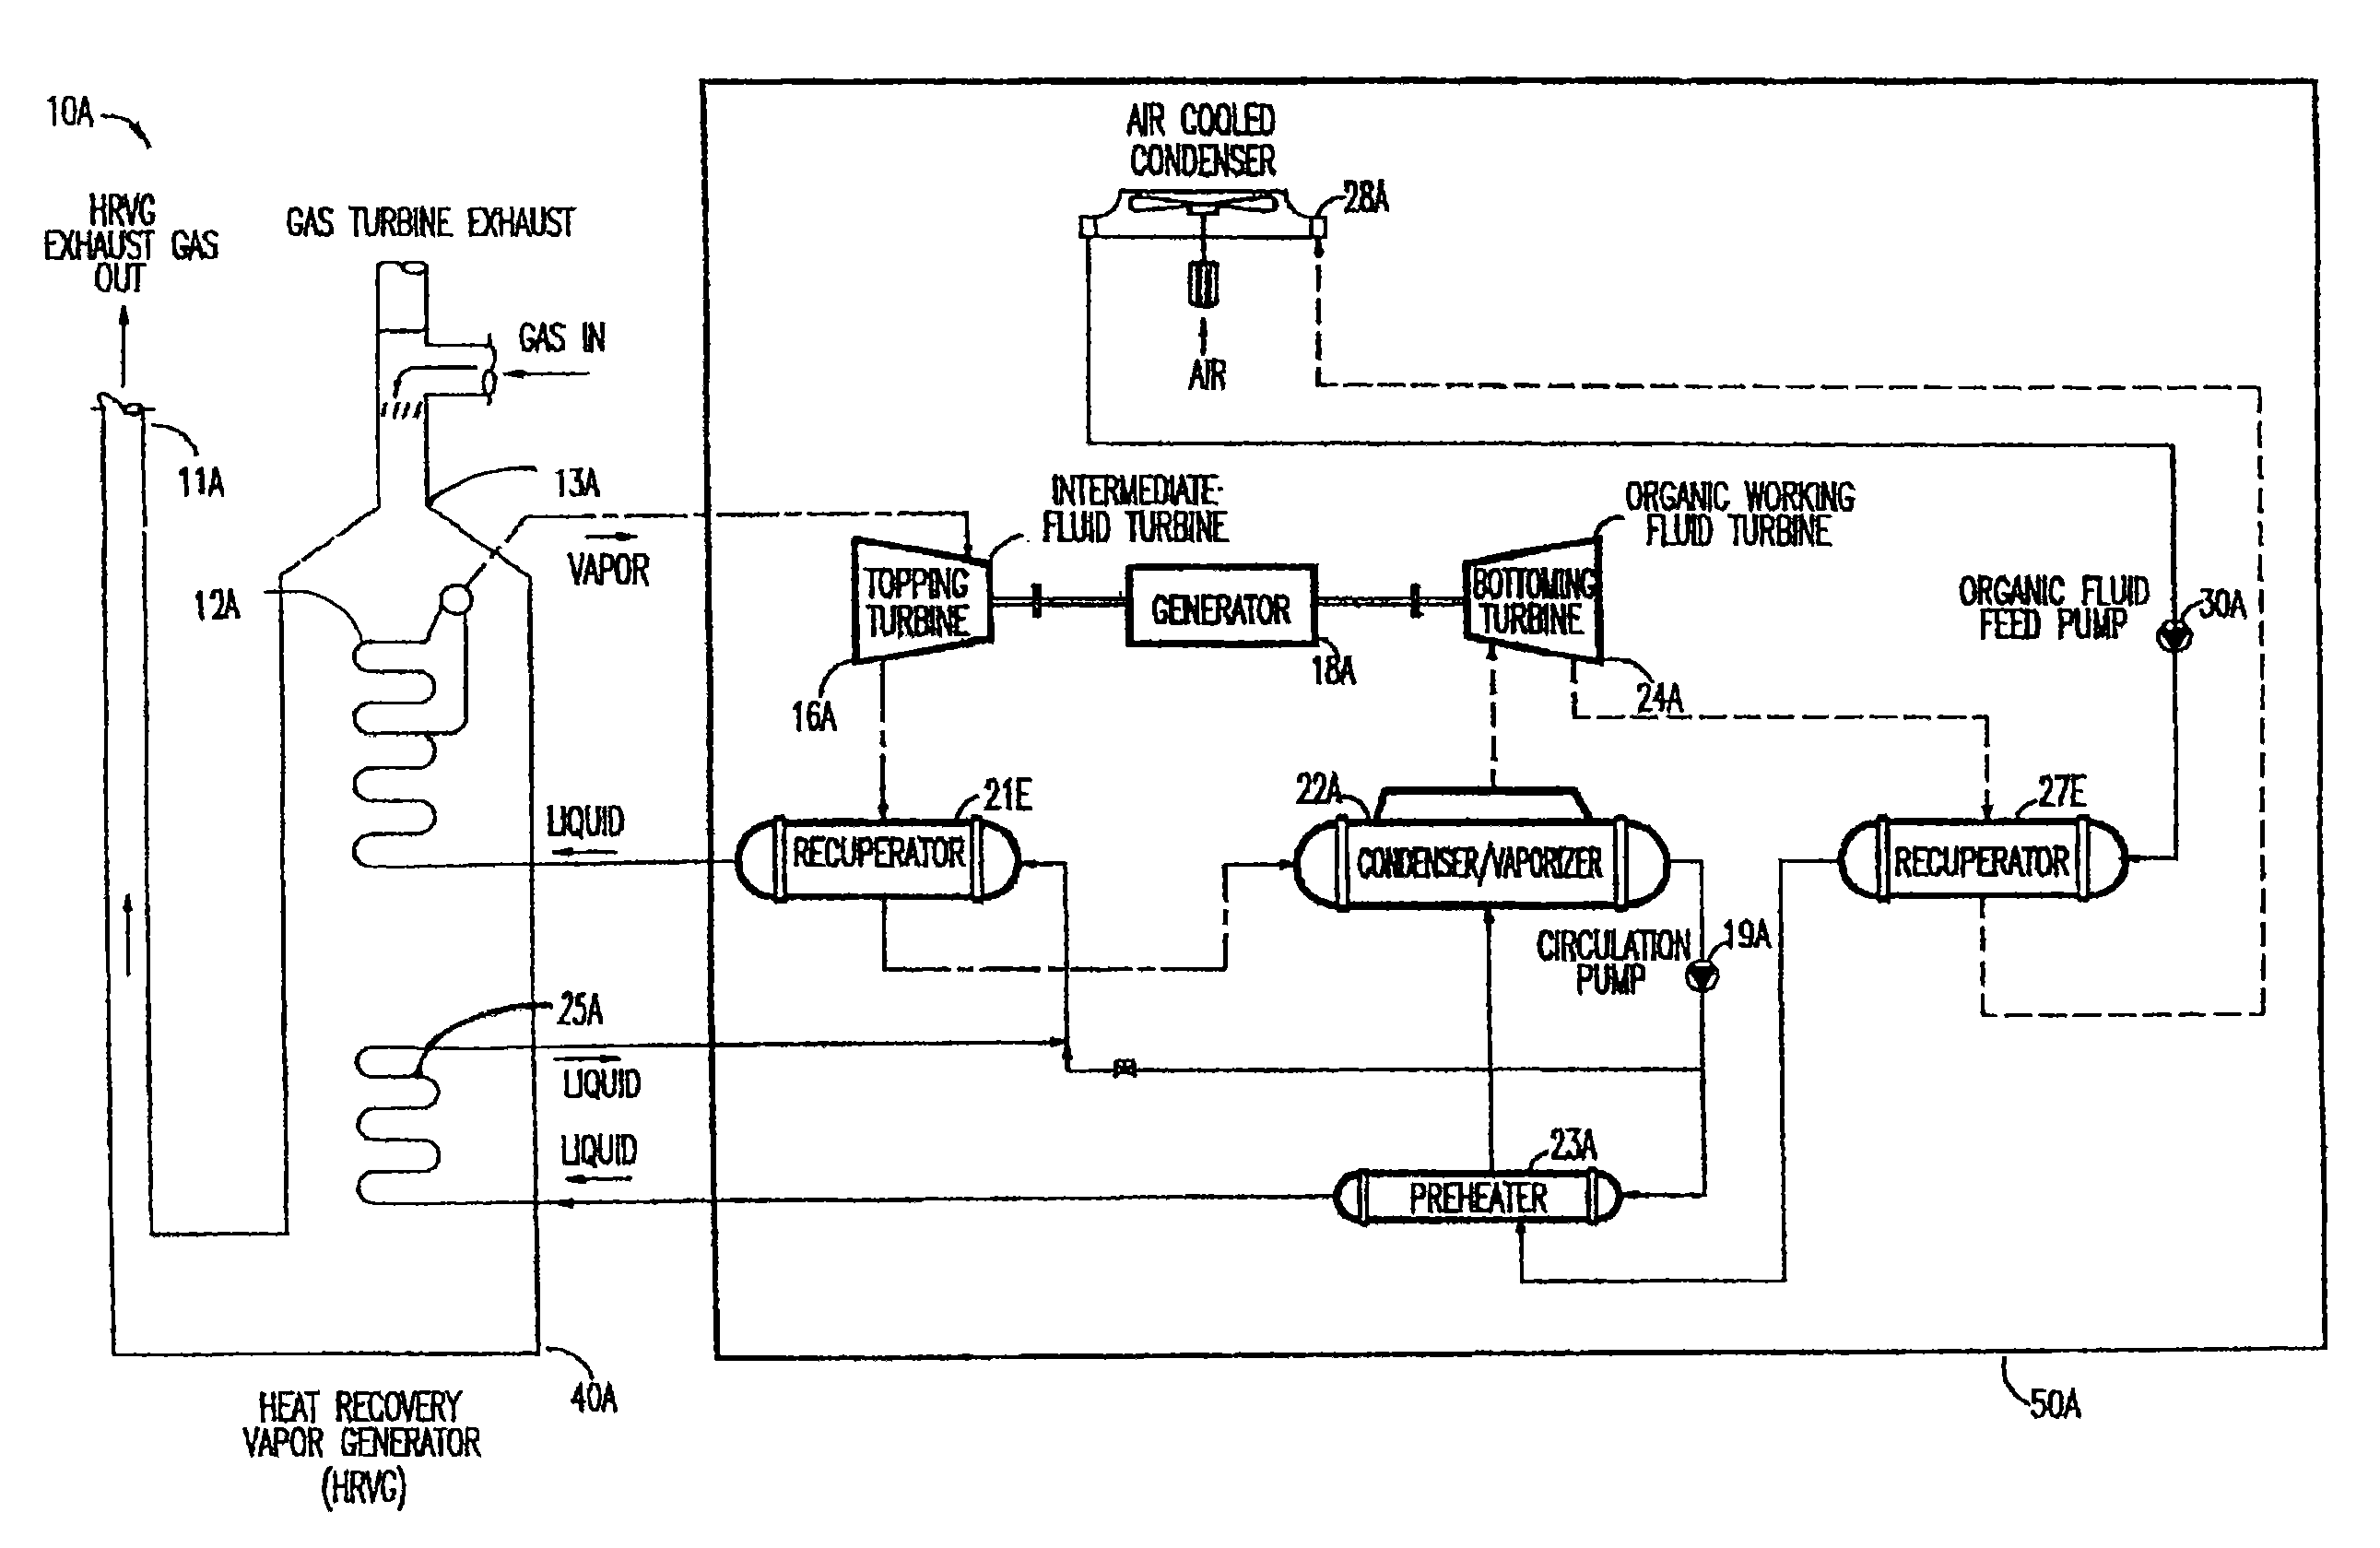 Patent US Power plant using organic working fluids